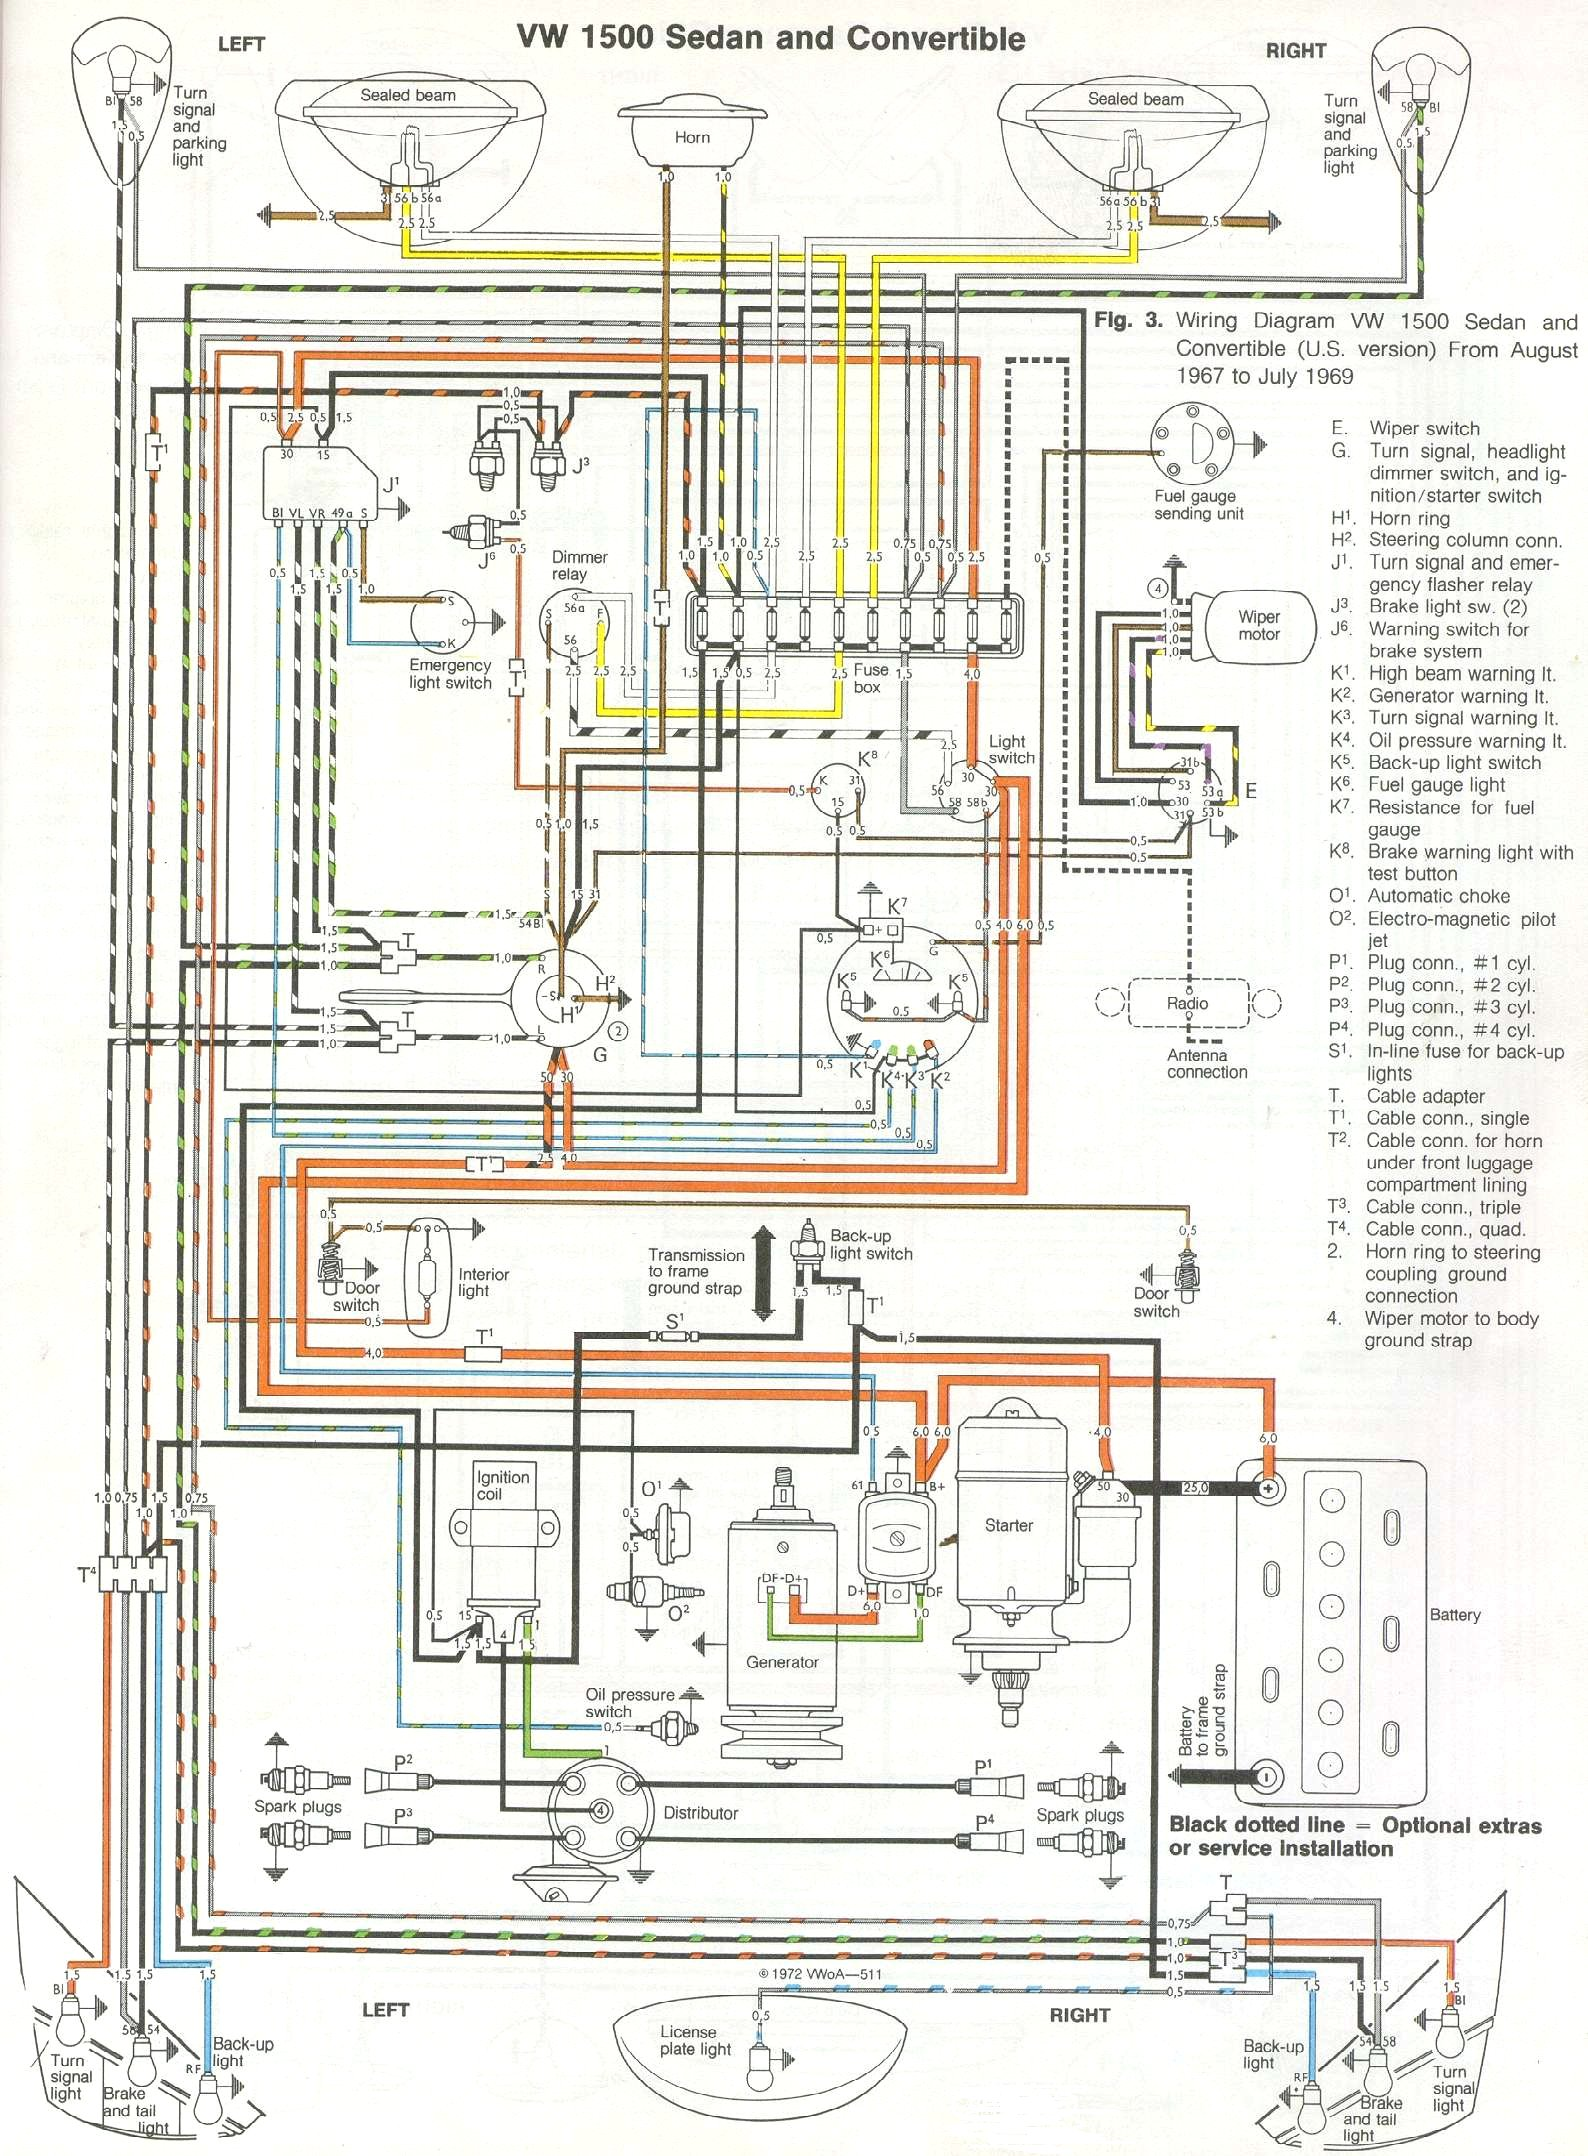 bug_6869 vw wiring harness diagram cj7 wiring harness diagram \u2022 wiring vw type 3 wiring harness at alyssarenee.co